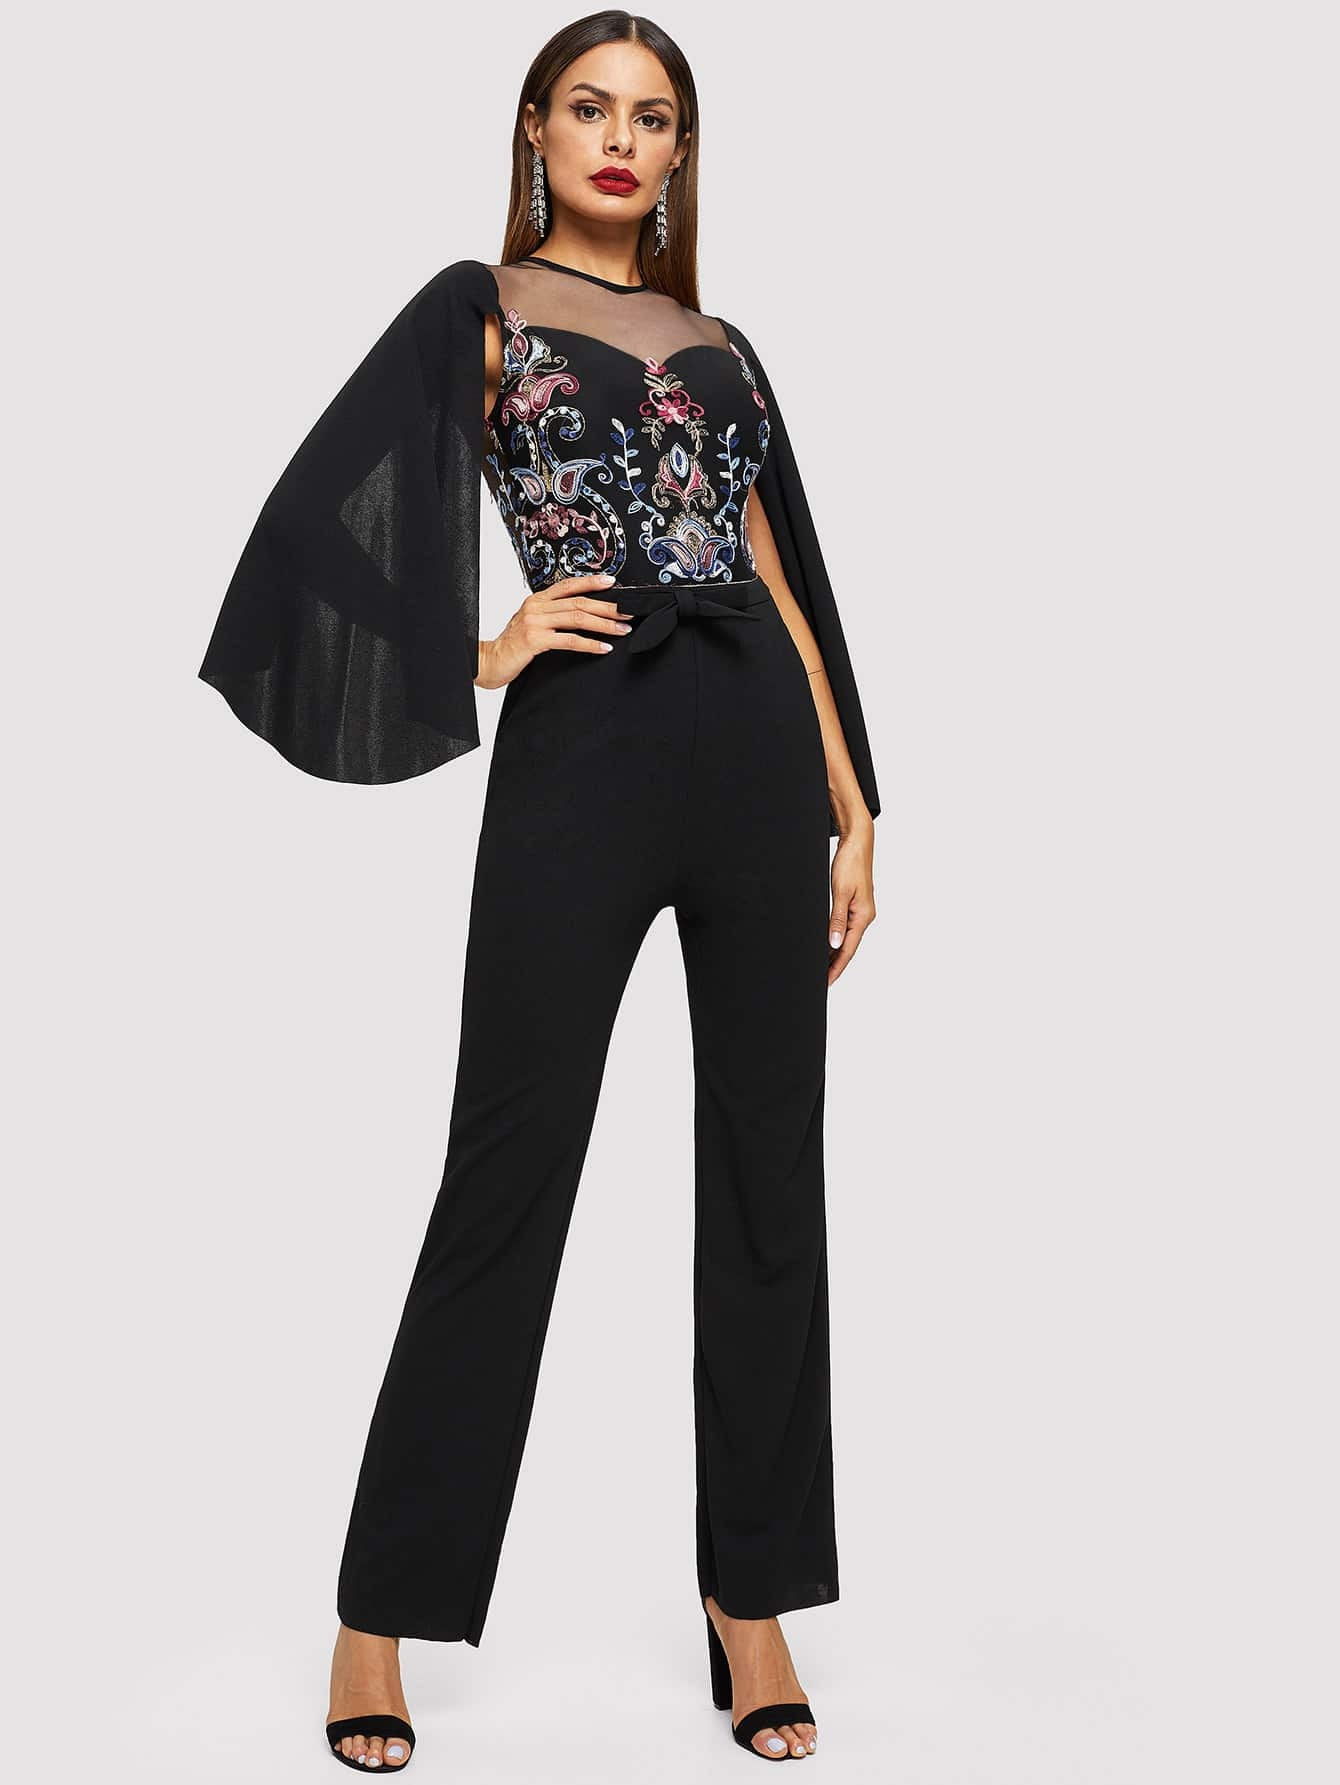 f813e17fa103 Cape Sleeve Mesh Insert Embroidered Tailored Jumpsuit EmmaCloth ...